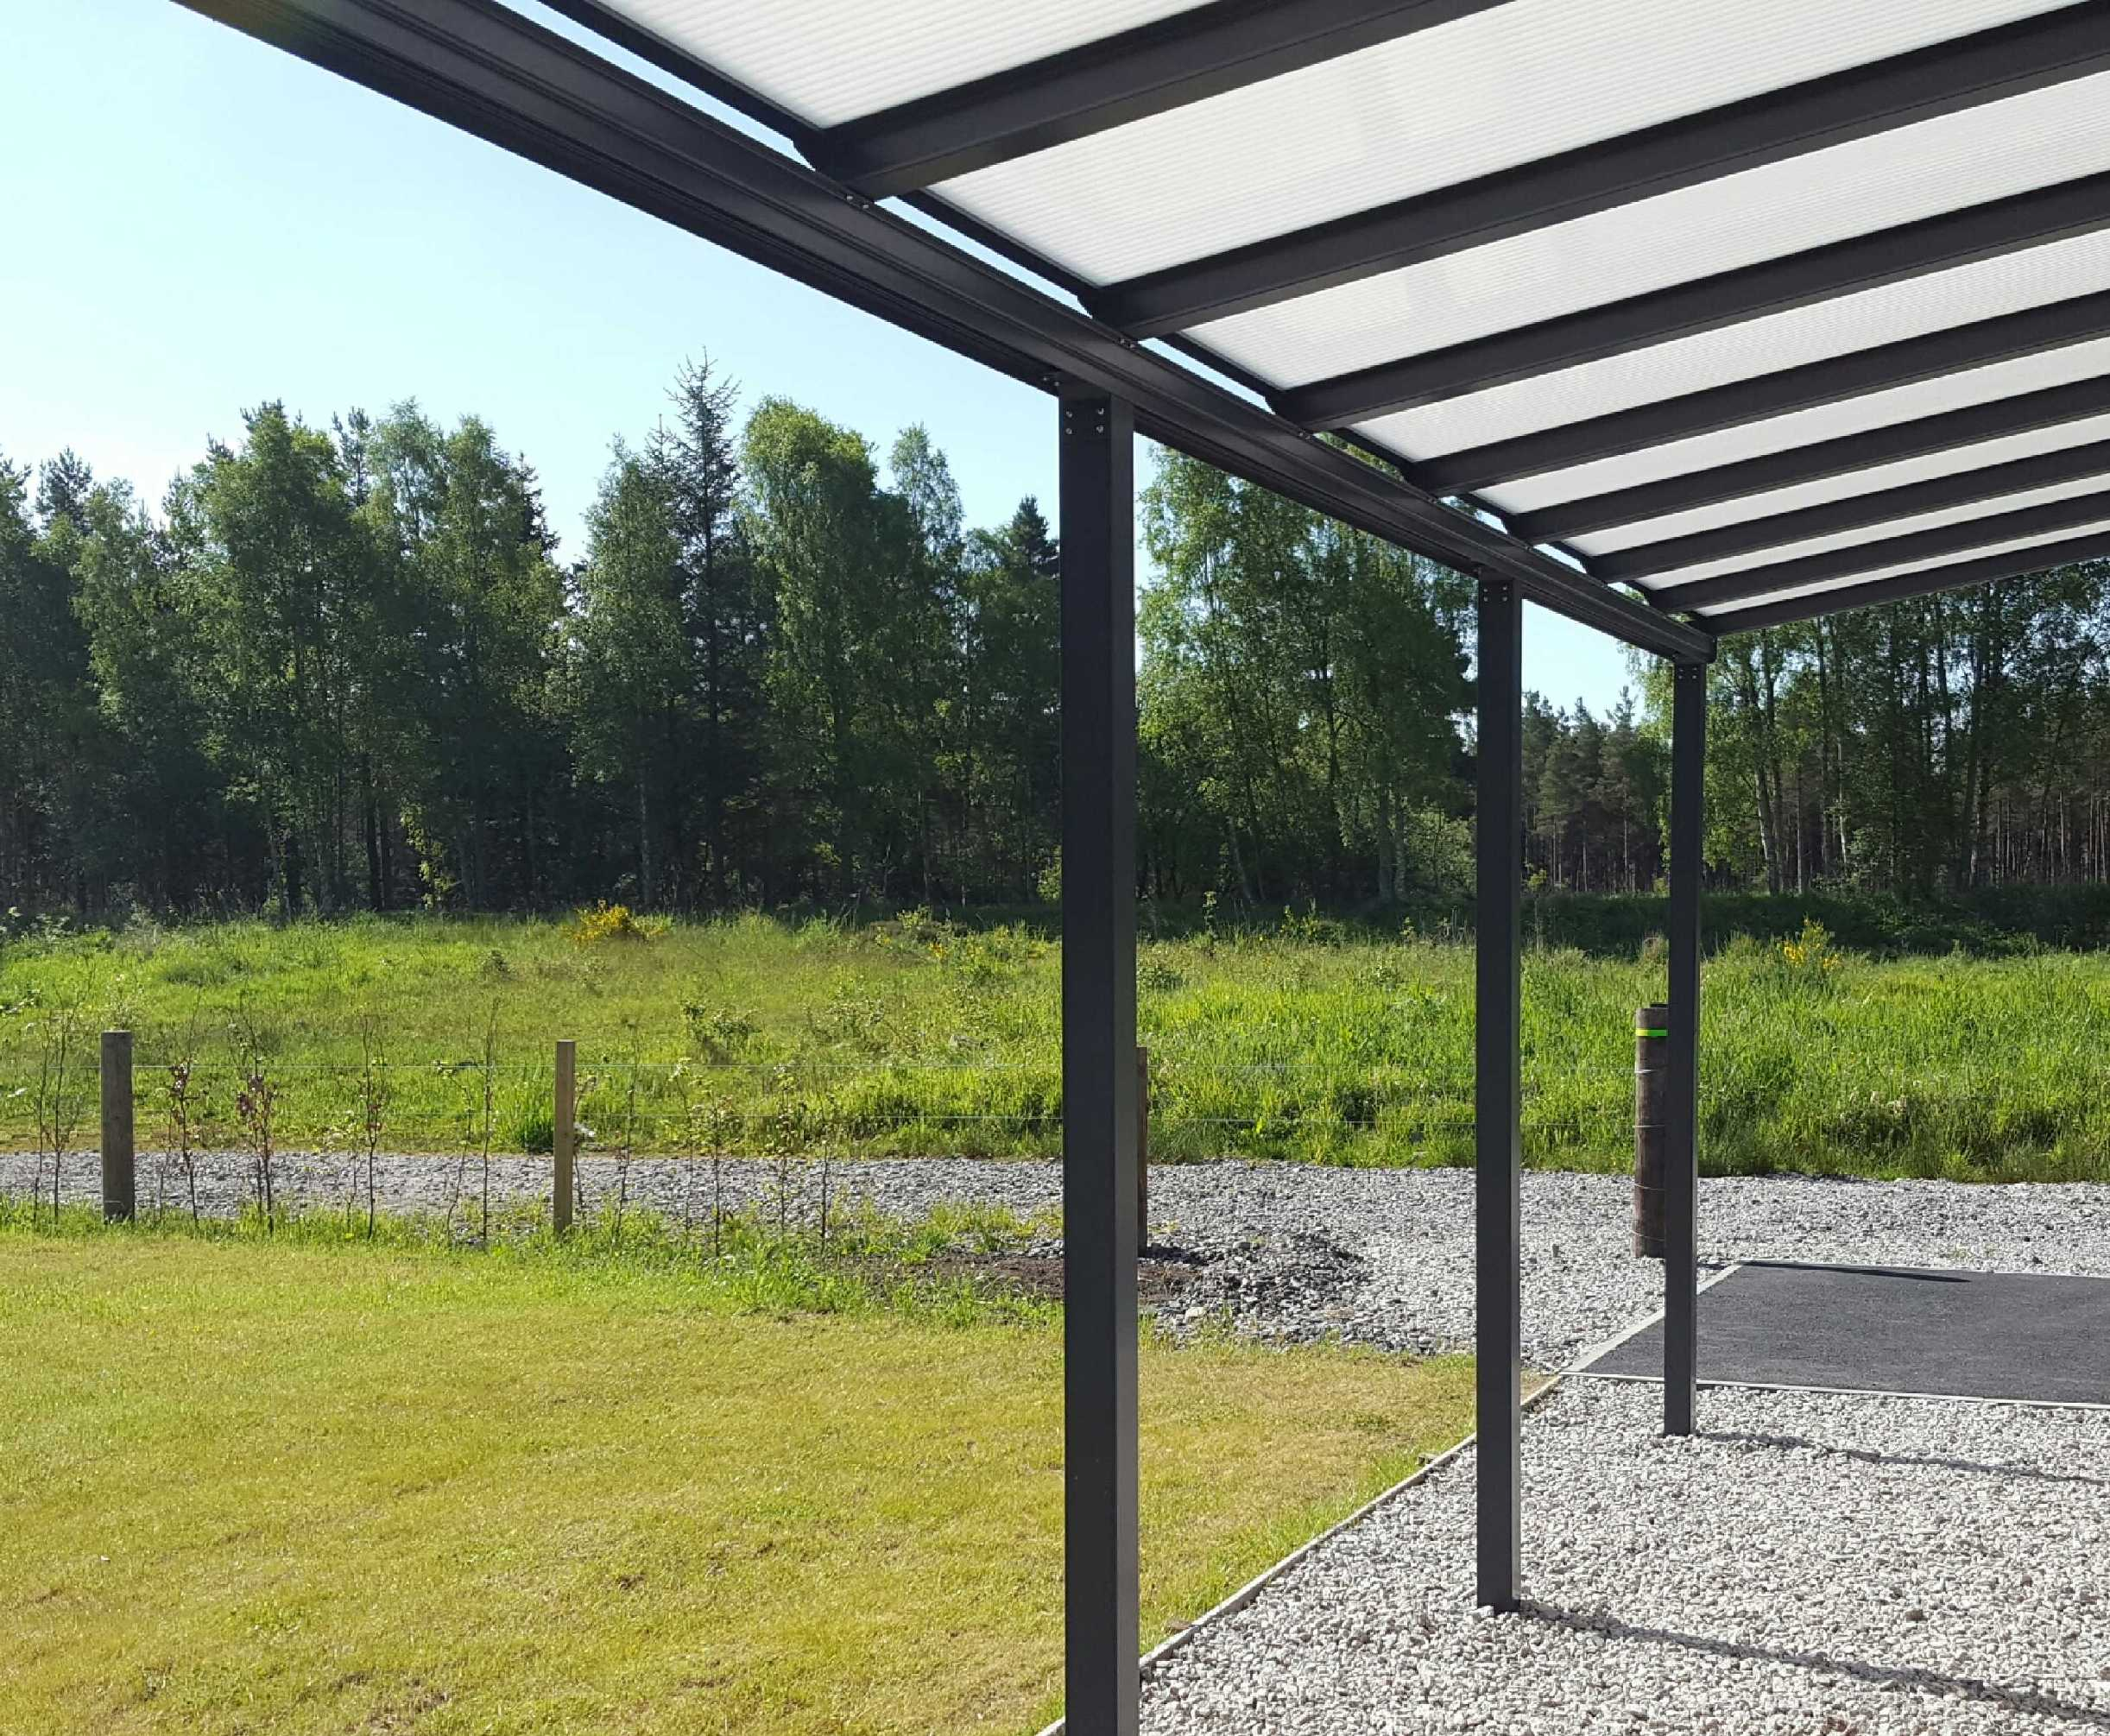 Omega Smart Lean-To Canopy, Anthracite Grey, 16mm Polycarbonate Glazing - 4.2m (W) x 4.5m (P), (3) Supporting Posts